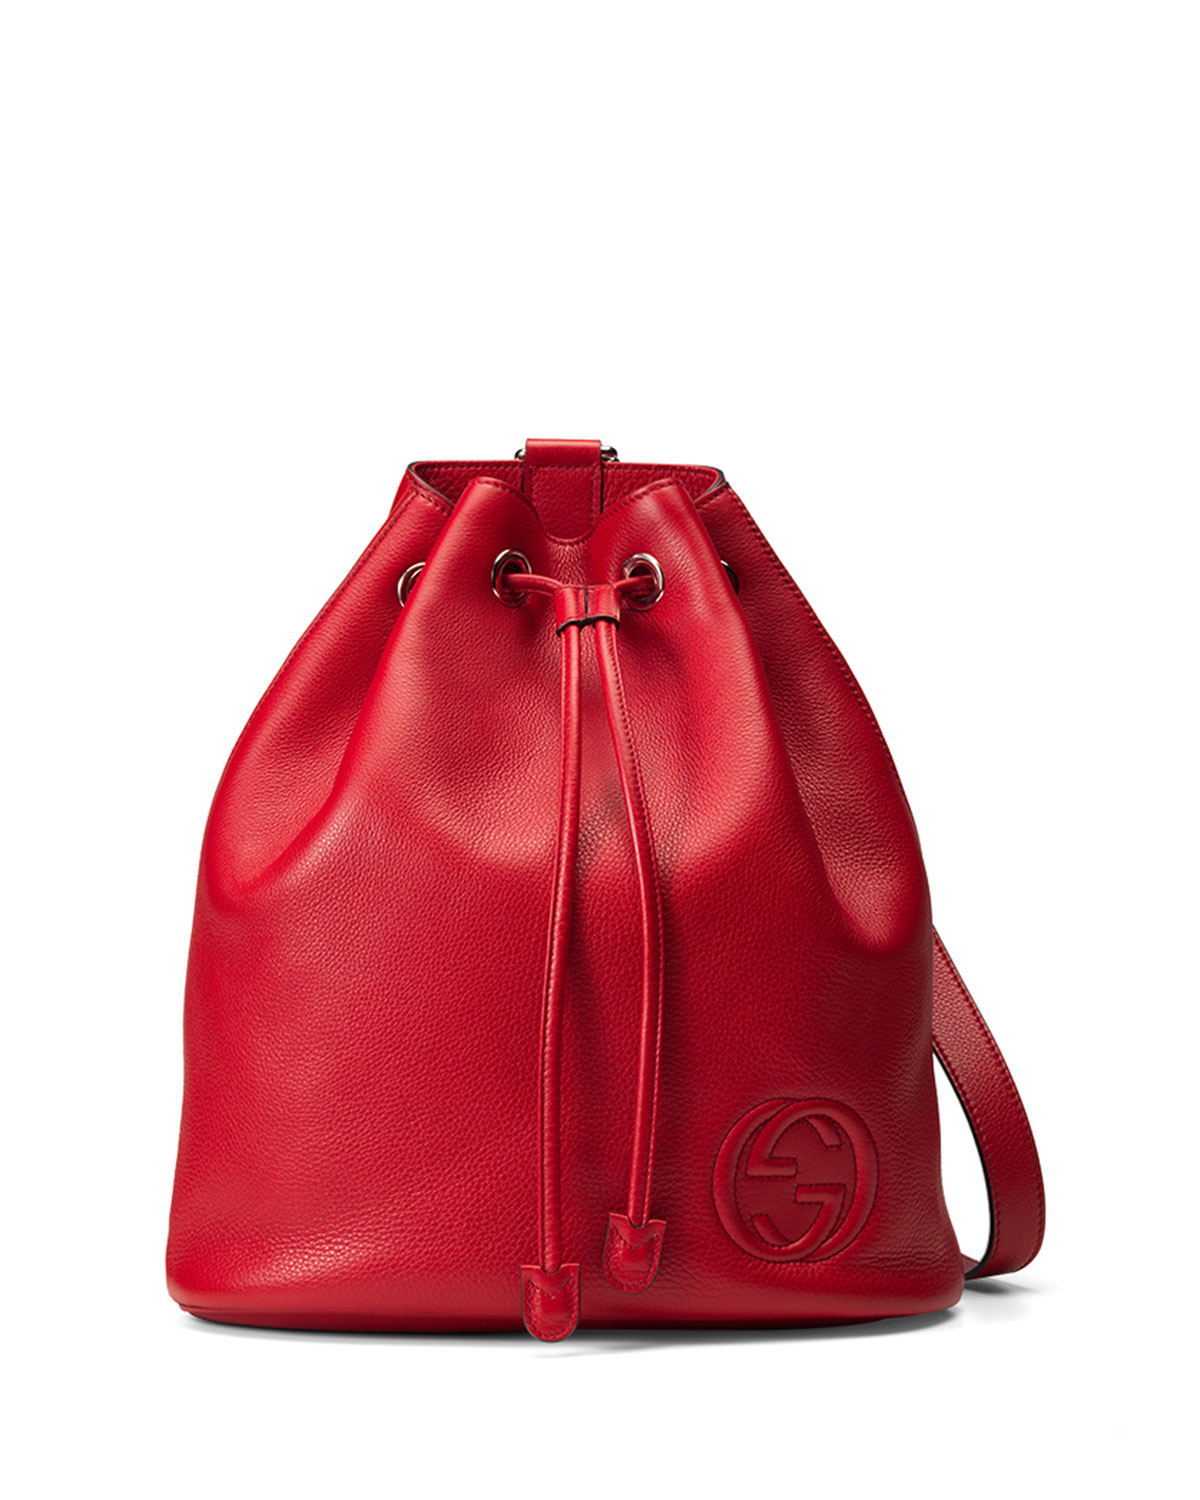 Gucci Soho Leather Drawstring Backpack Red Neiman Marcus